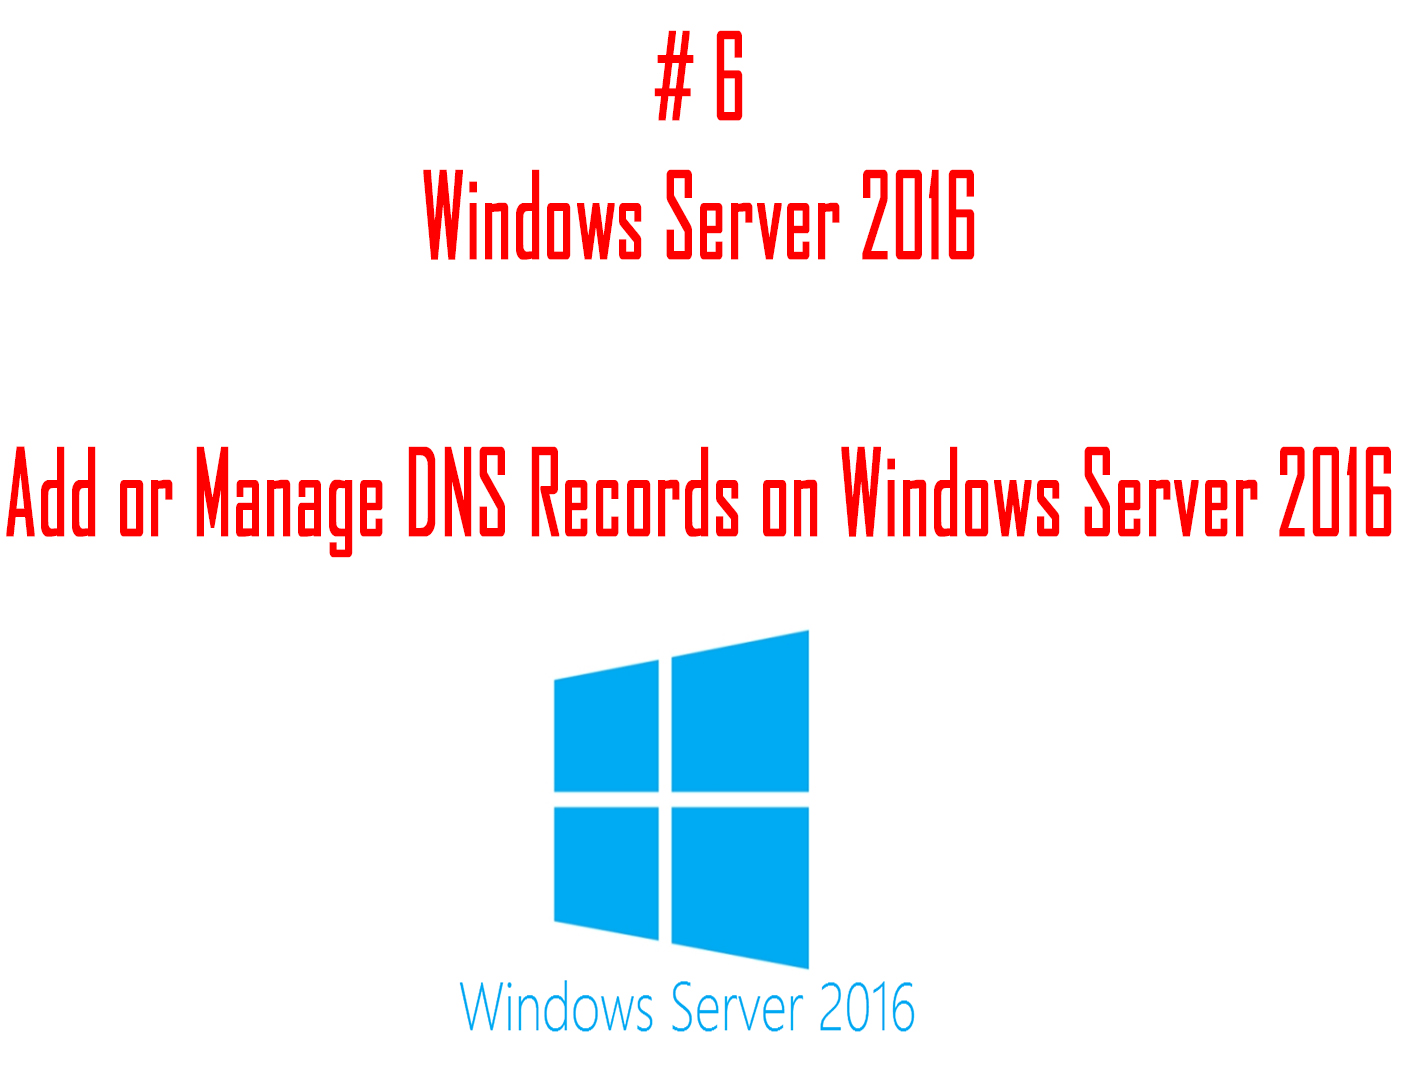 Add or Manage DNS Records on Windows Server 2016 - Techpanther